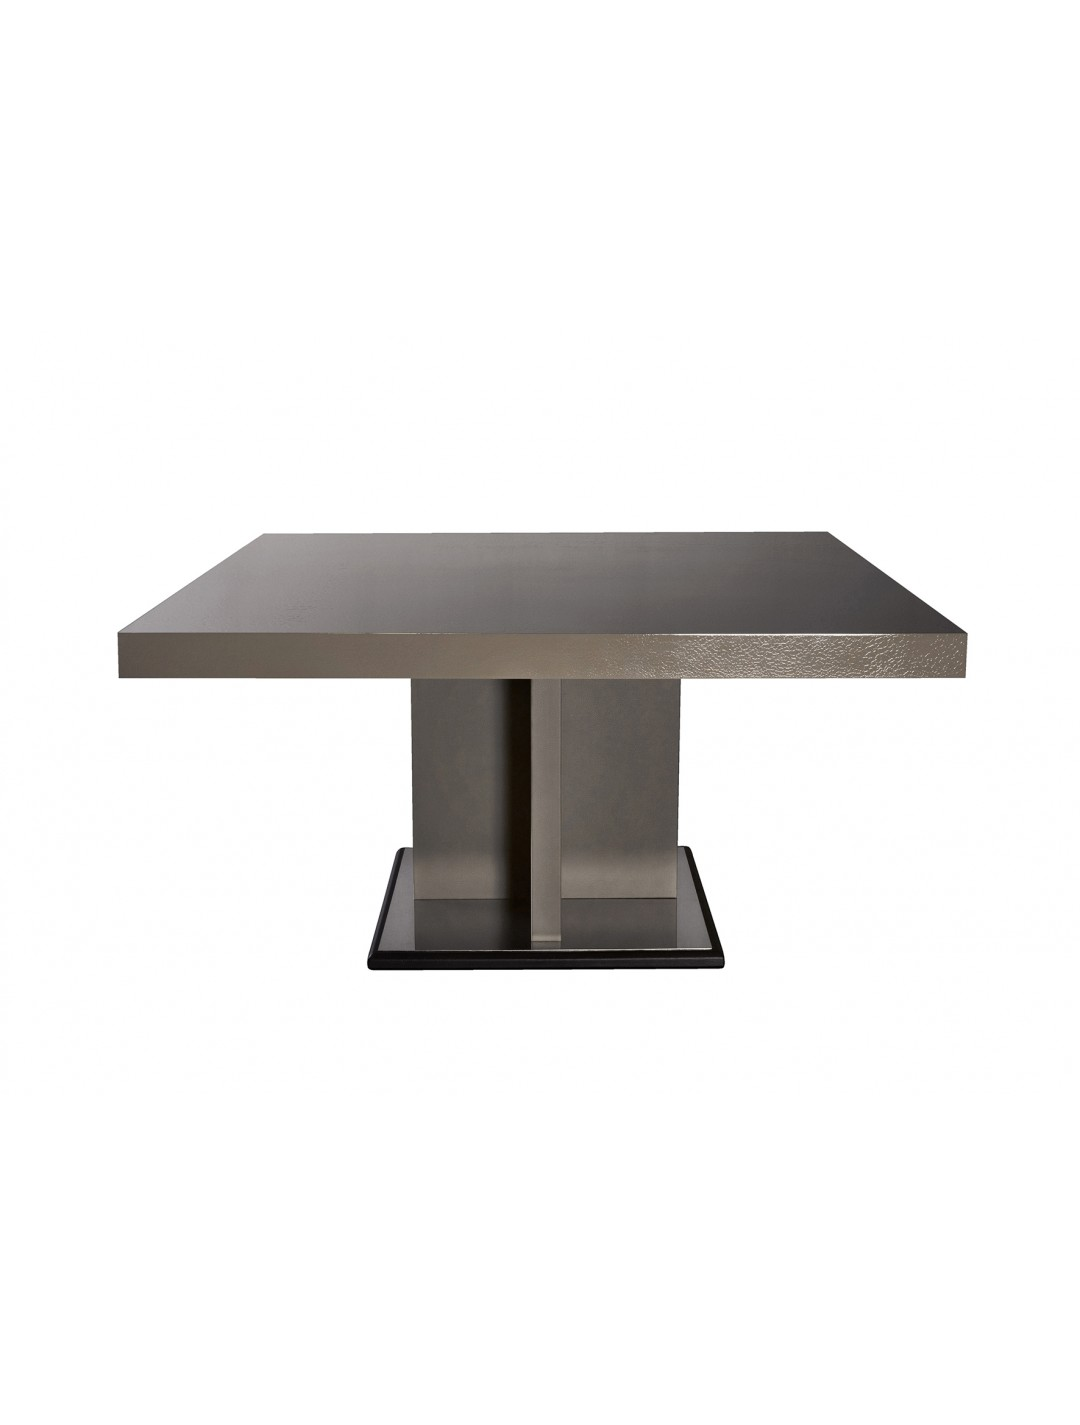 VALENTINA WITH STAND DINING TABLE (220X120 CM)